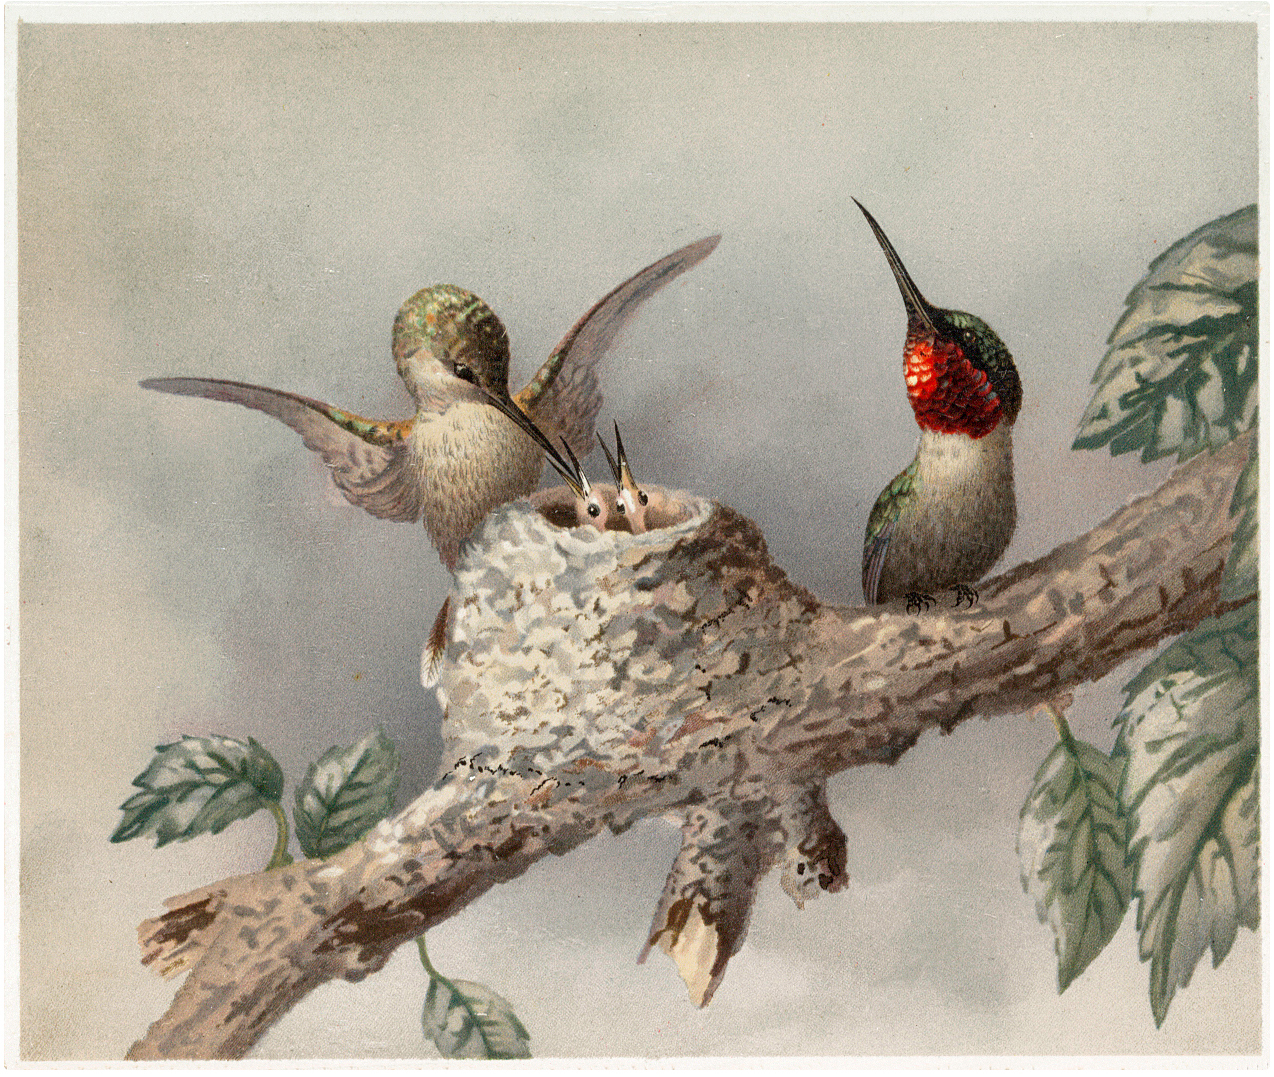 Hummingbirds with Nest Image